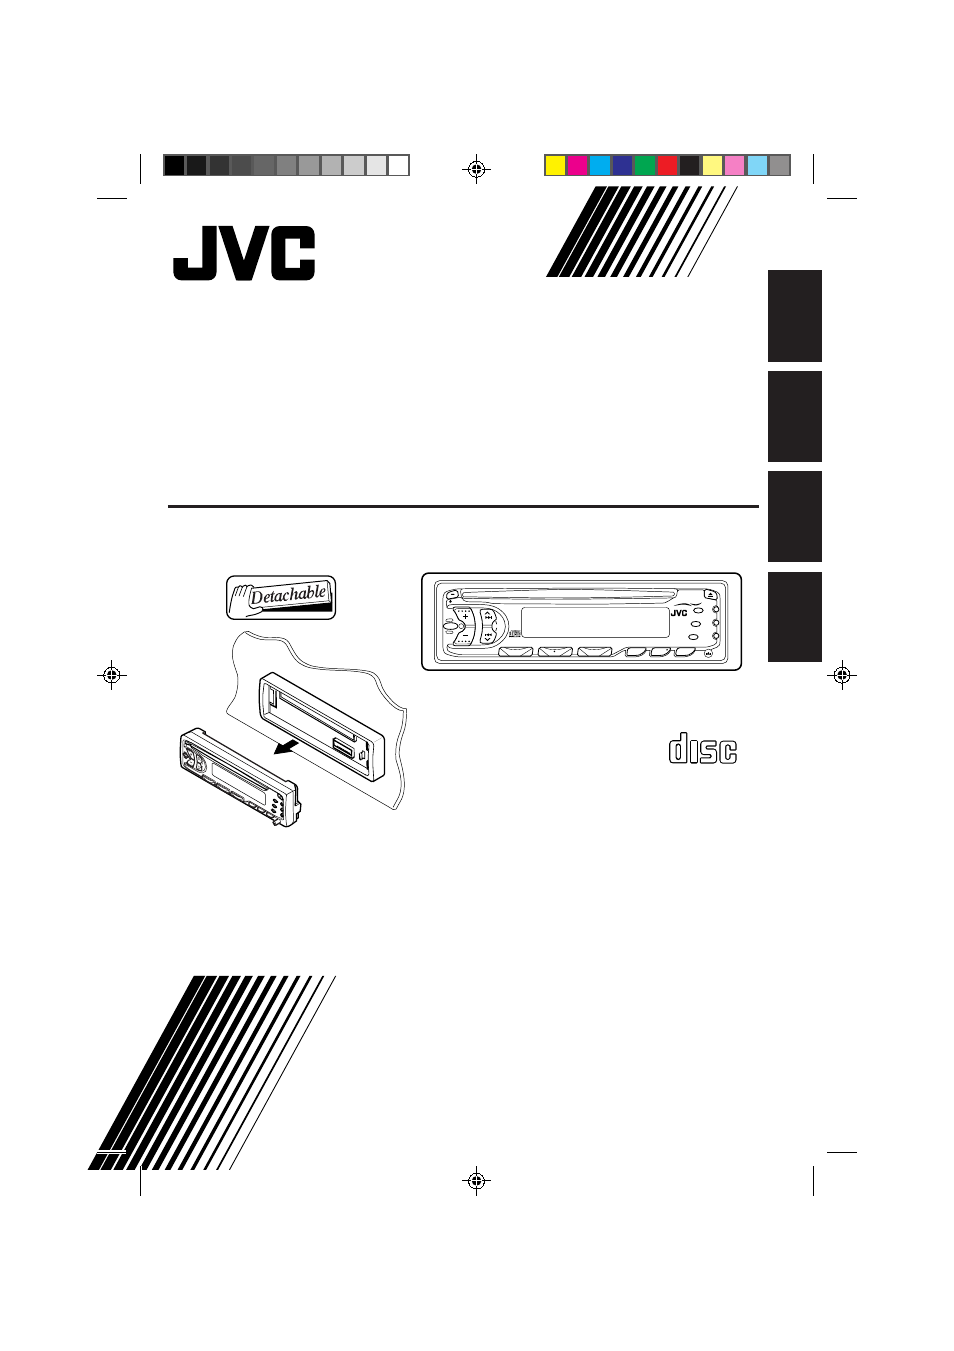 jvc kd s636 page1 kds 19 jvc radio wiring diagram 1990 jeep cherokee limited radio jvc kd sr81bt wiring diagram at webbmarketing.co